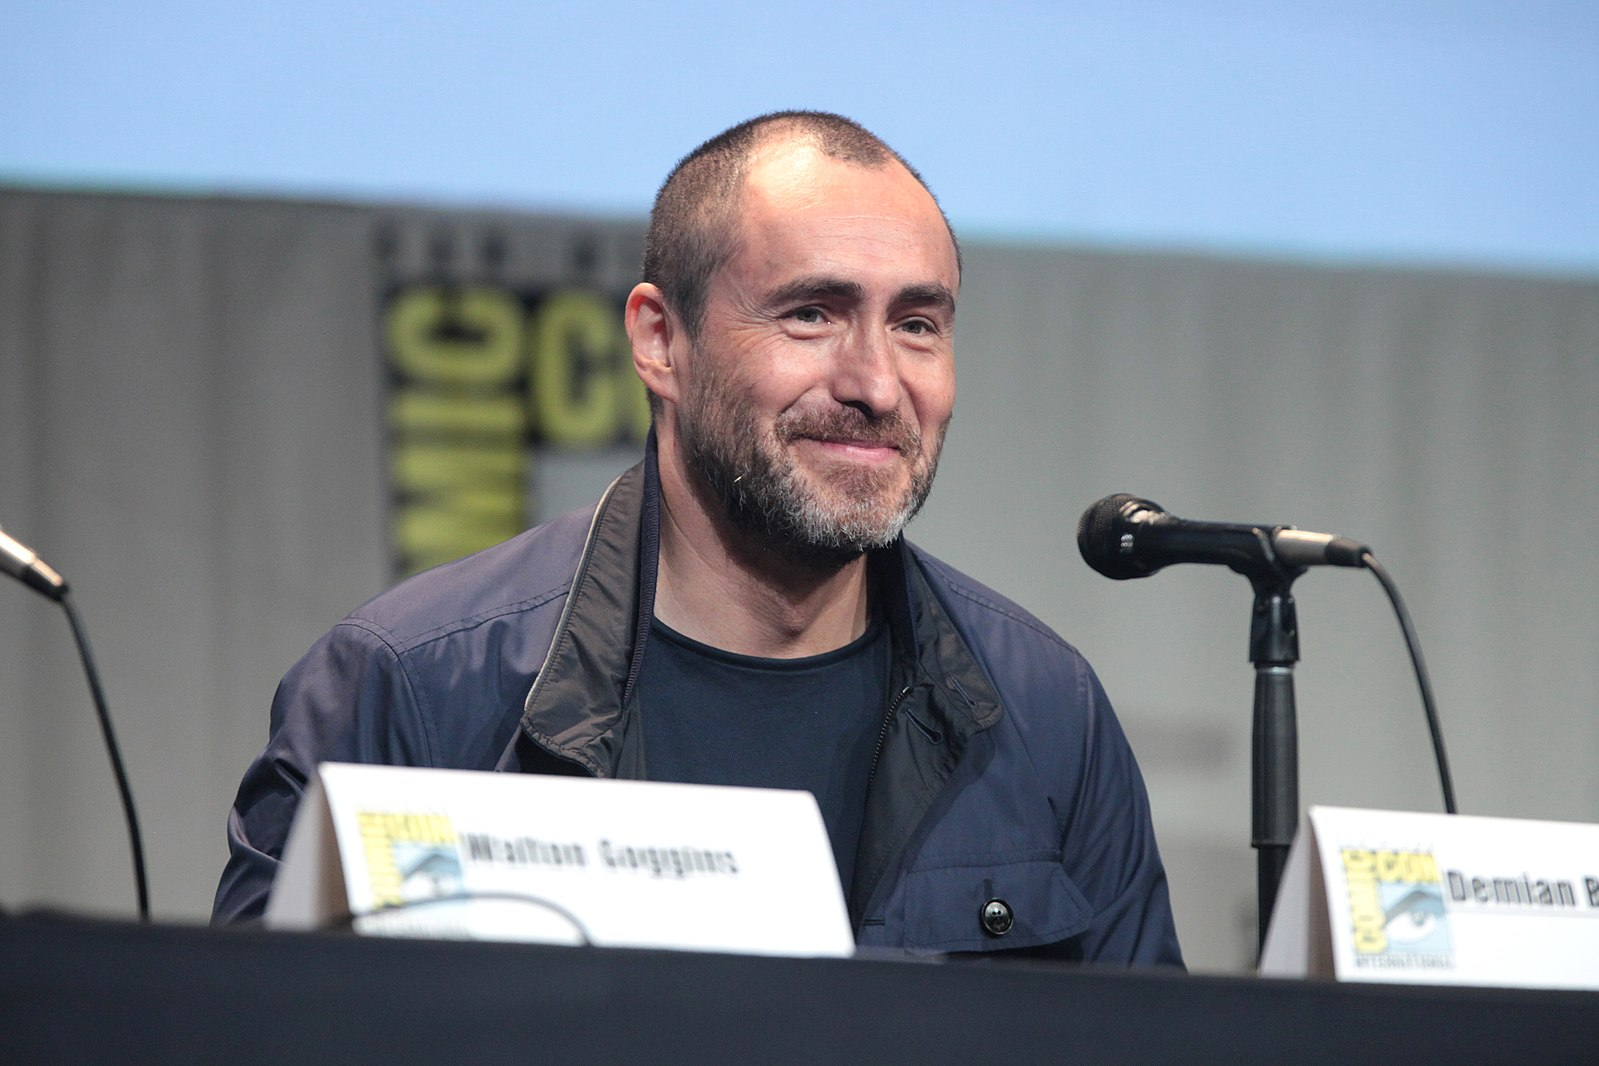 Demian Bichir Let the Right One In